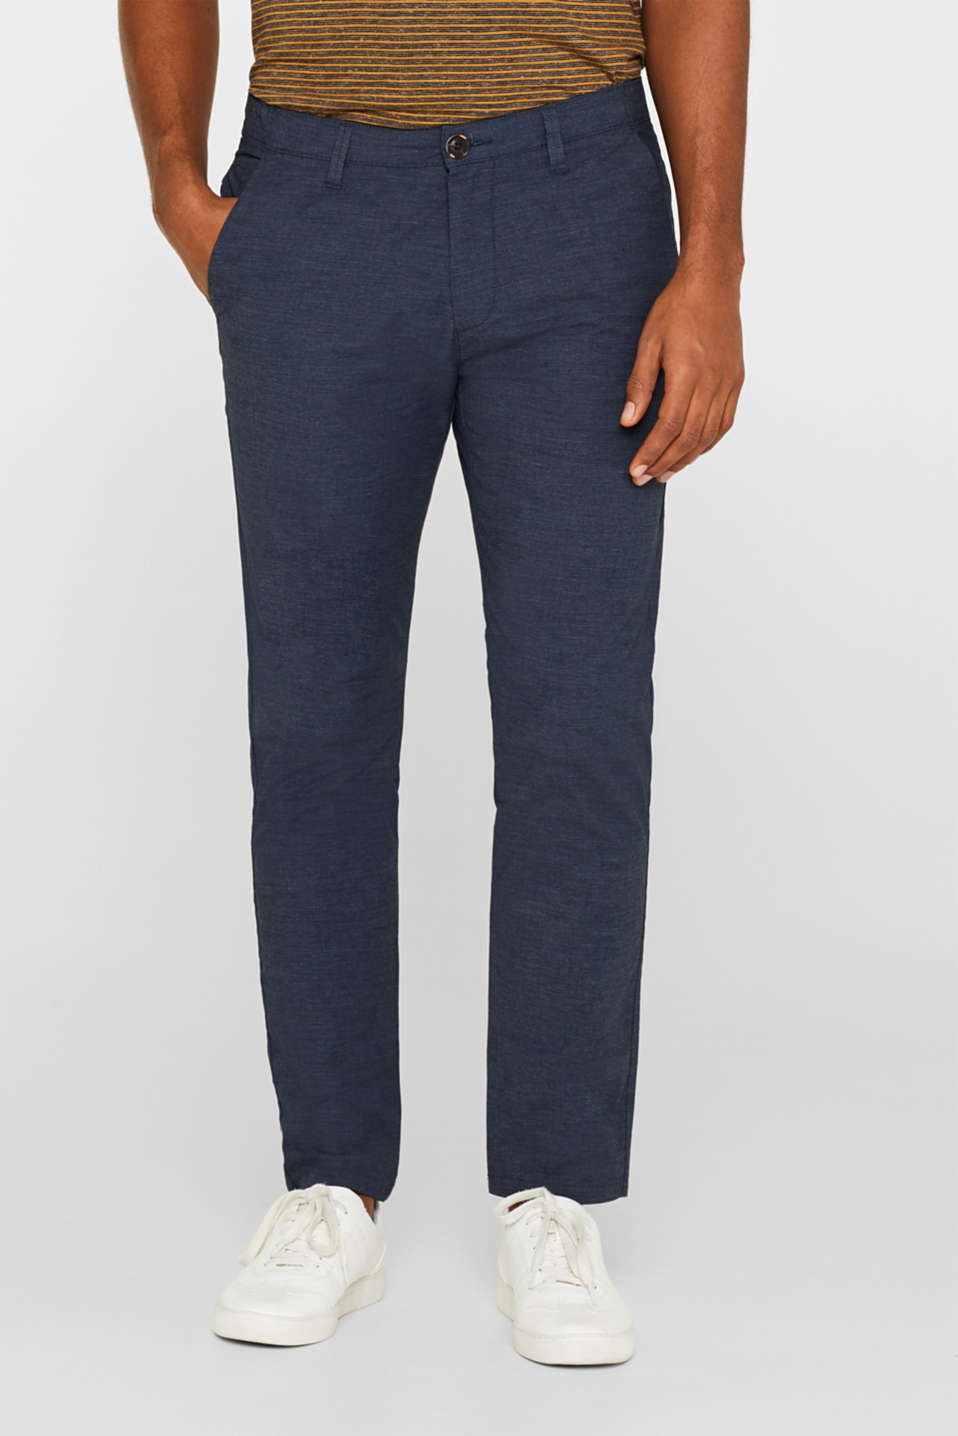 Esprit - Melierte Chino mit Superstretch-Komfort